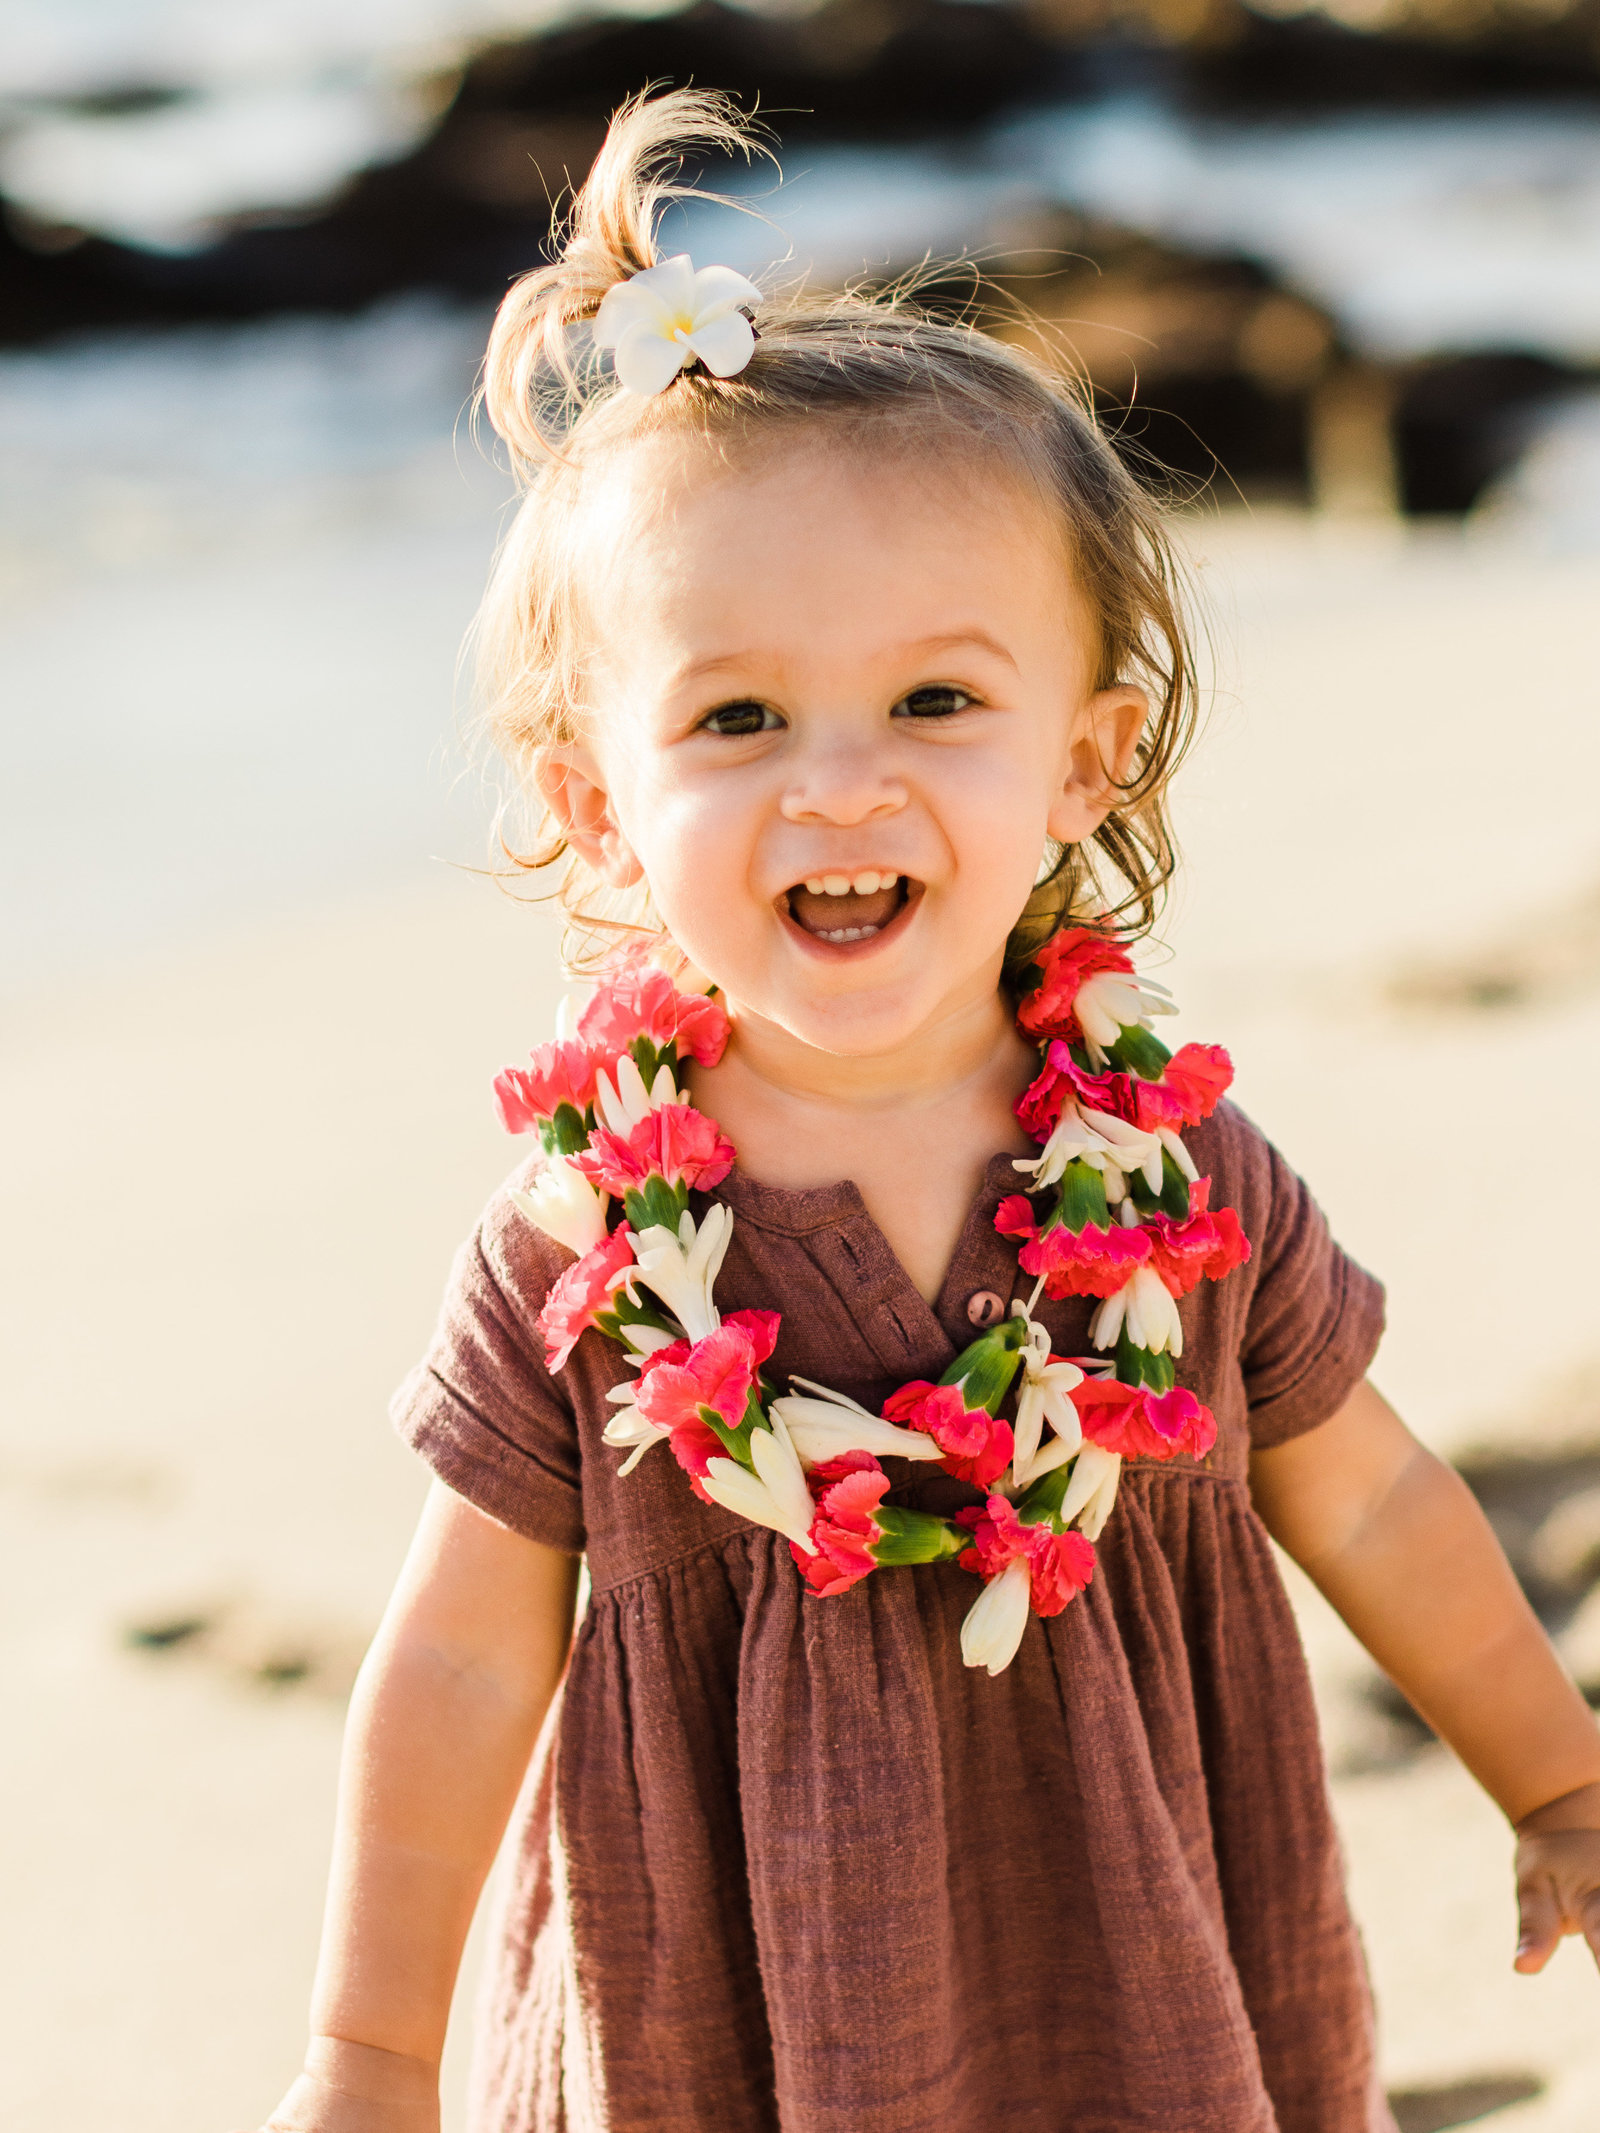 Toddler smiles at the camera while wearing a lei on a beach in hawaii